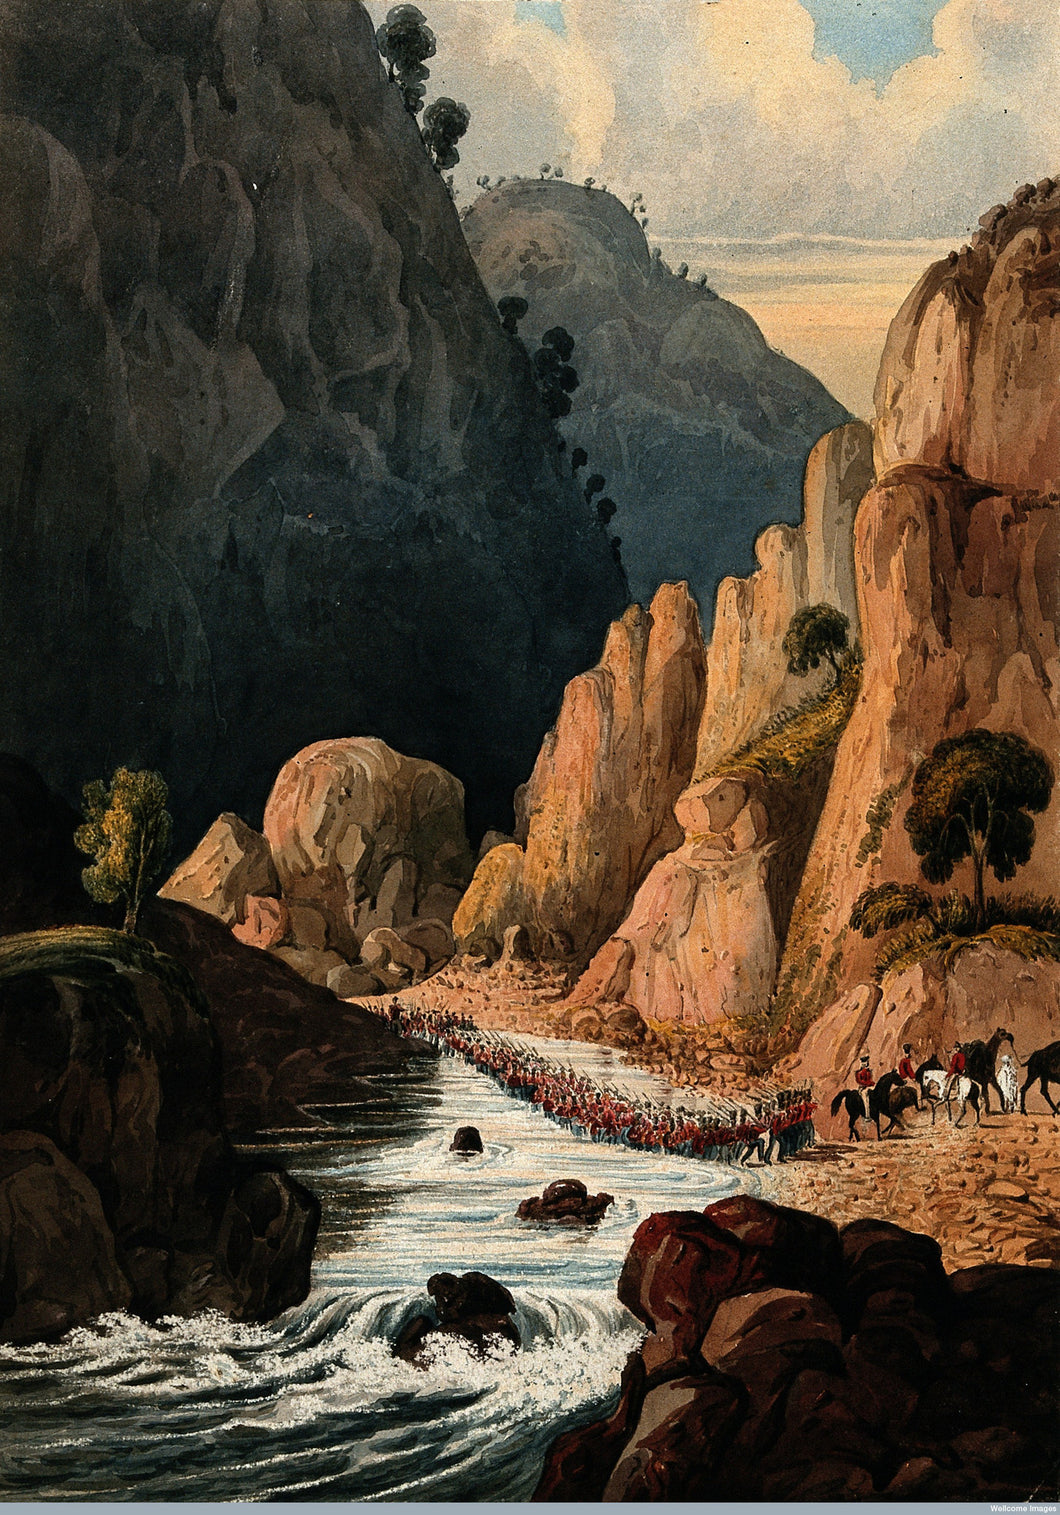 Cavalary Marching Through a River